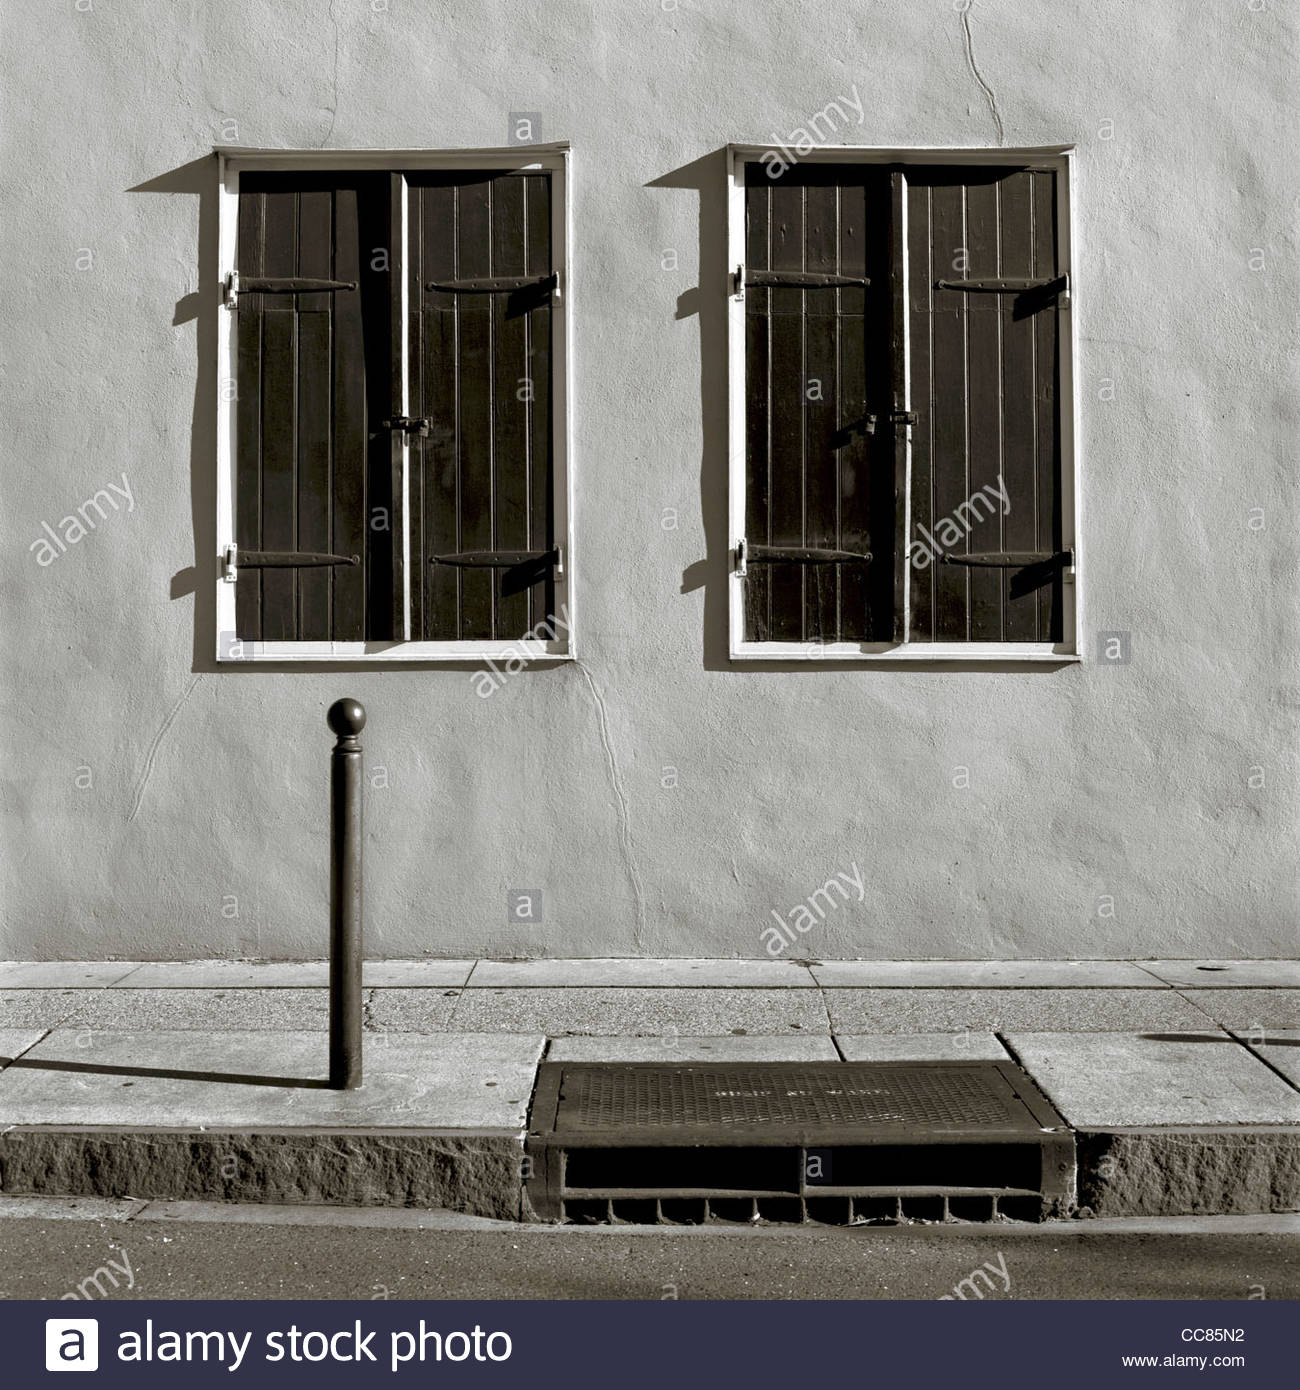 Two shuttered windows on a stucco wall, French Quarter, New Orleans, Louisiana, United States - Stock Image